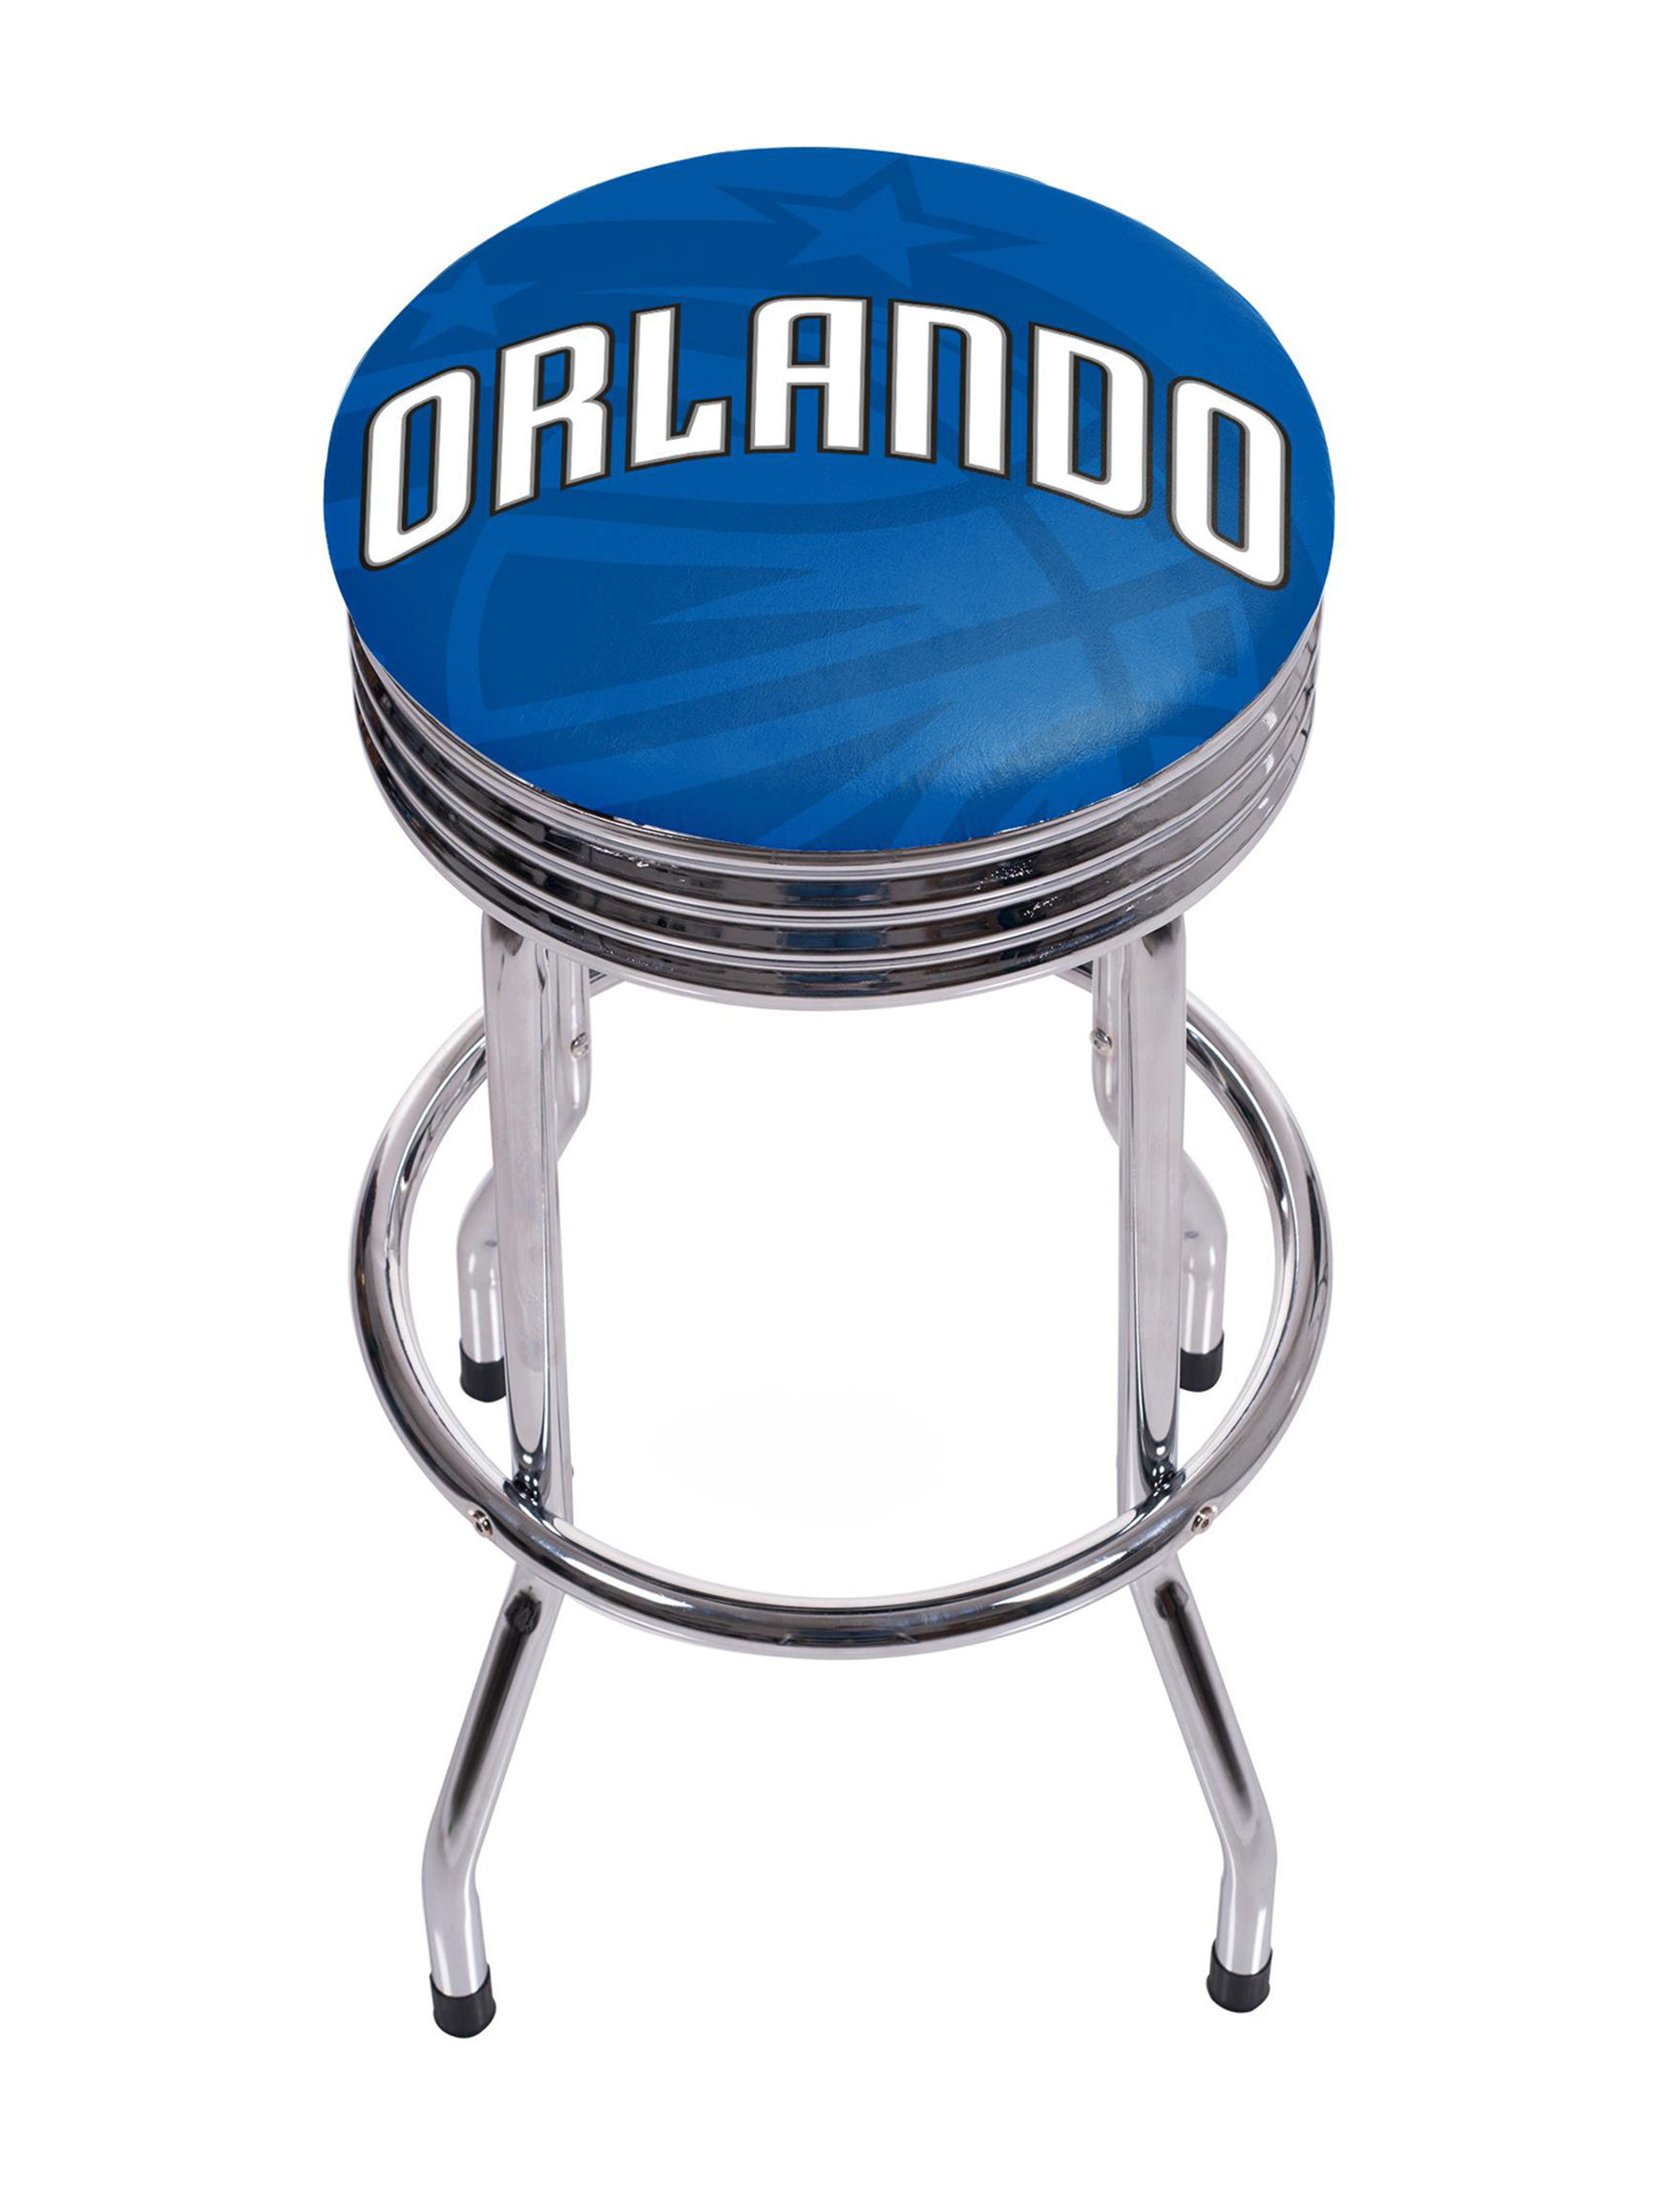 Orlando Magic Chrome Ribbed Bar Stool Stage Stores : HG 431630 SI 324082 Bzm from www.stage.com size 1760 x 2292 jpeg 234kB